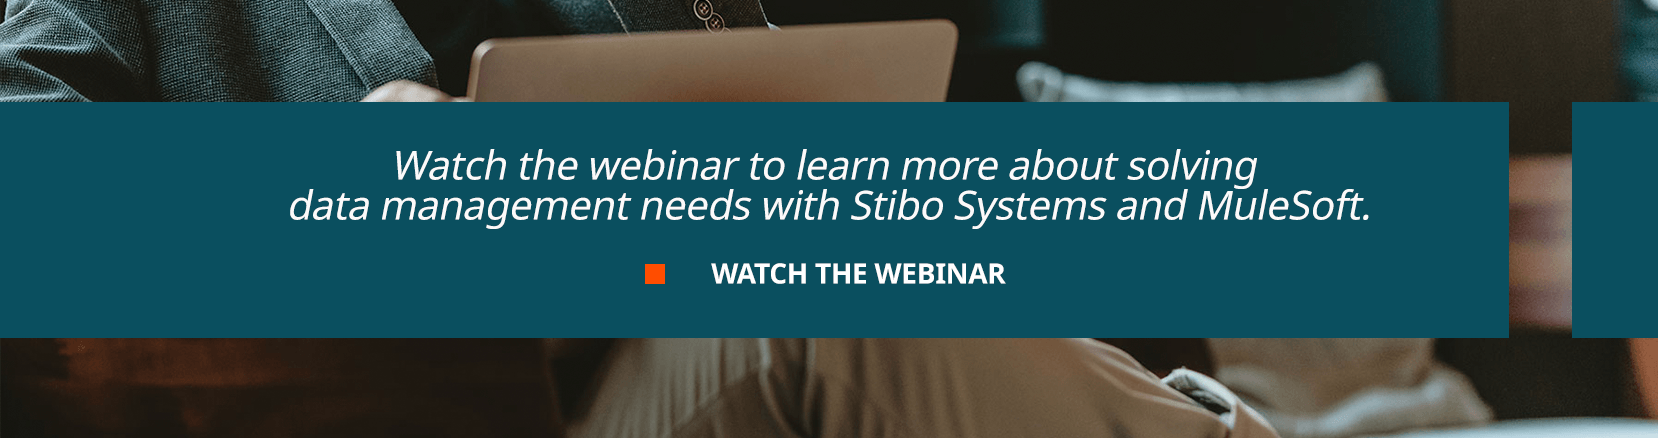 Watch the webinar to learn more about solving  data management needs with Stibo Systems and MuleSoft.